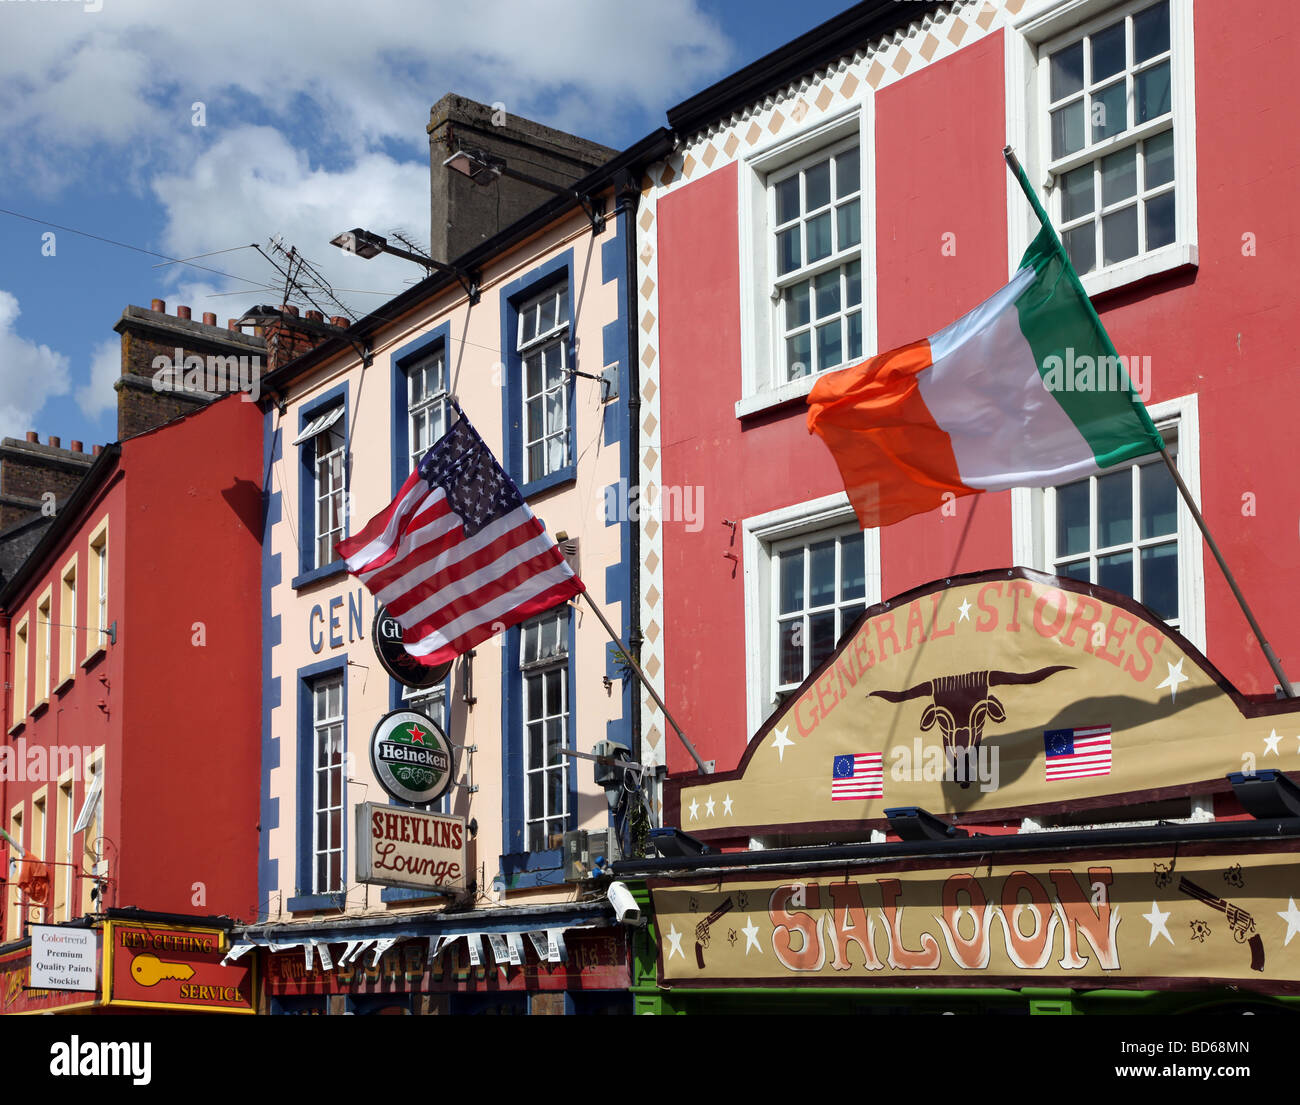 Collins Coaches (Carrickmacross) - Carrickmacross, Ireland